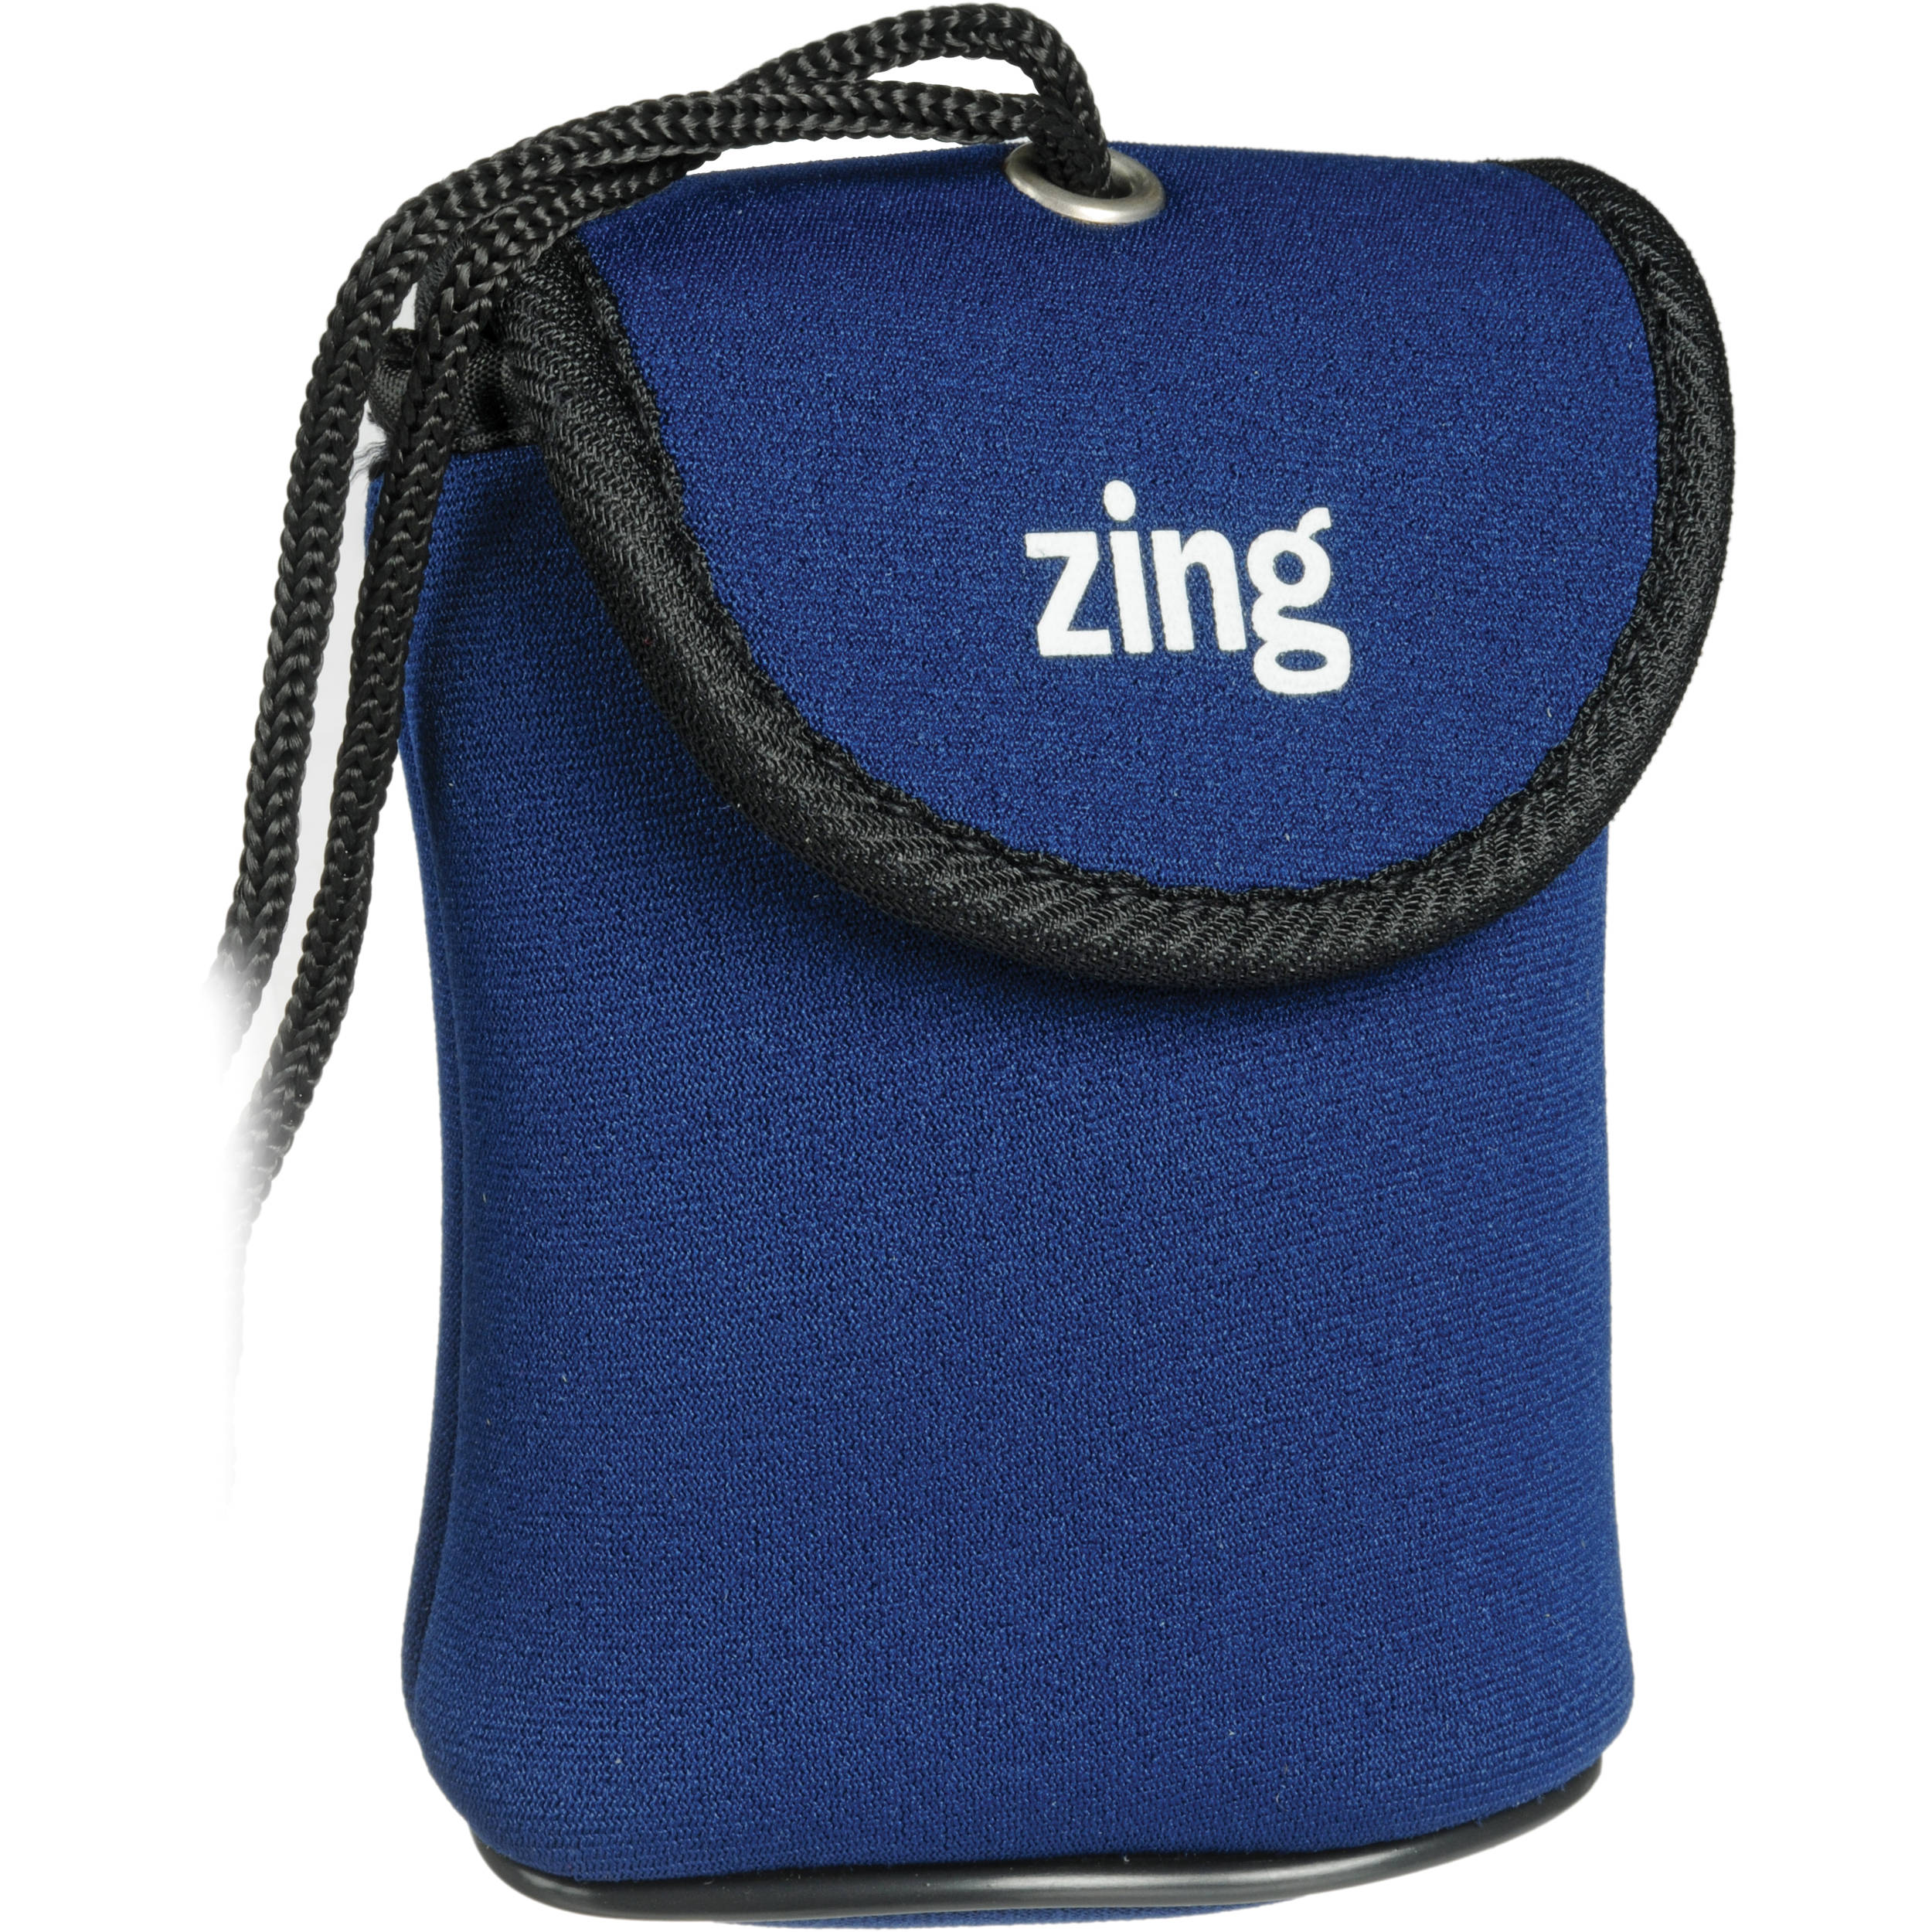 Https C Product 575993 Reg Softcase Laptop Notebook 116 Inch Zing Designs 563 303 Camera Pouch Large Blue 580955